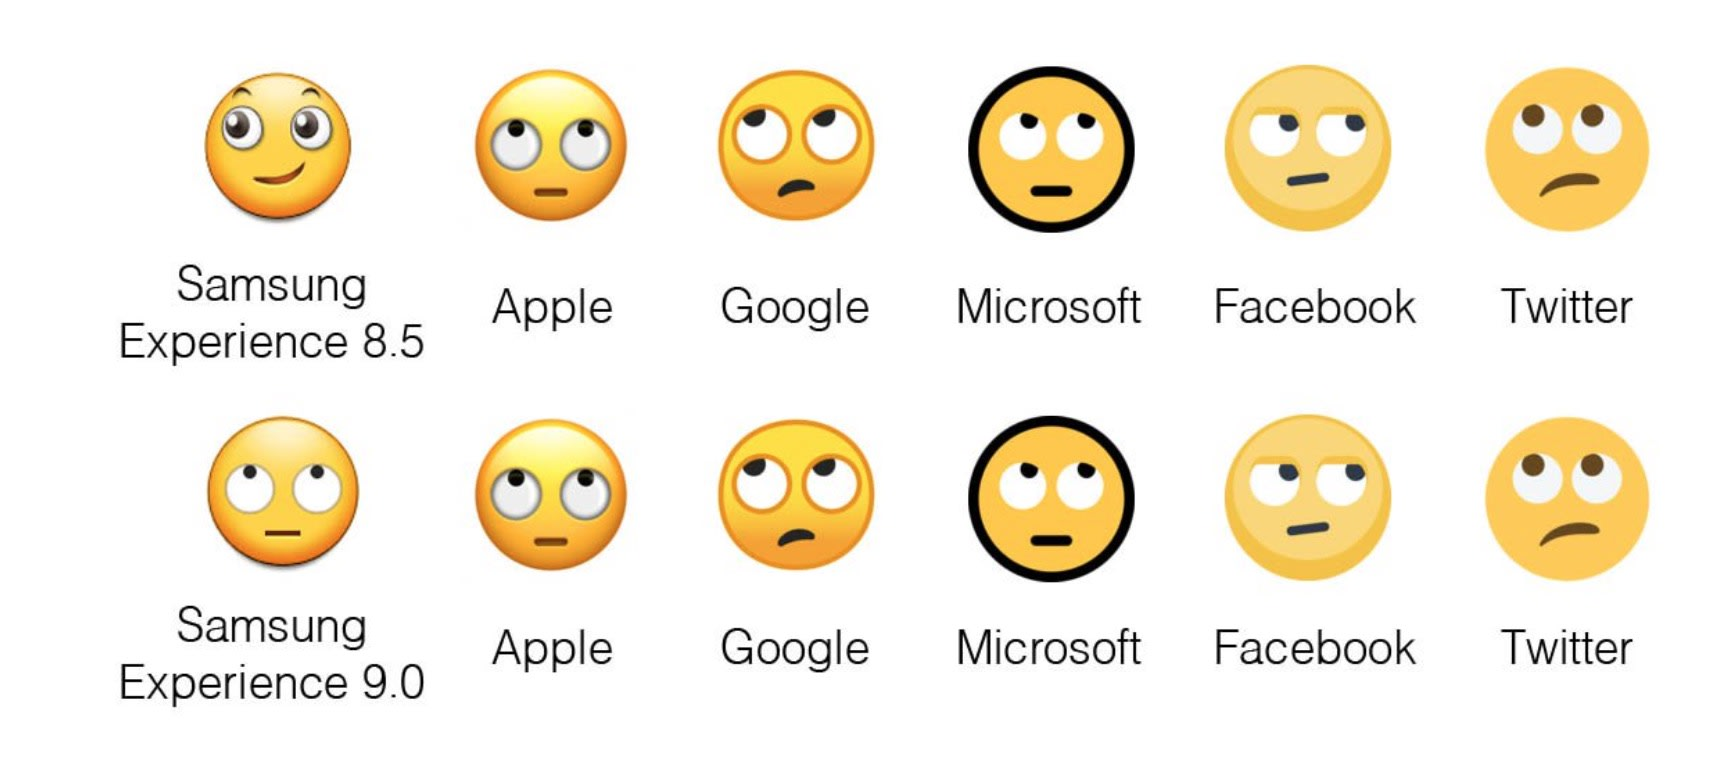 samsung s redesigned emoji are actually recognizable